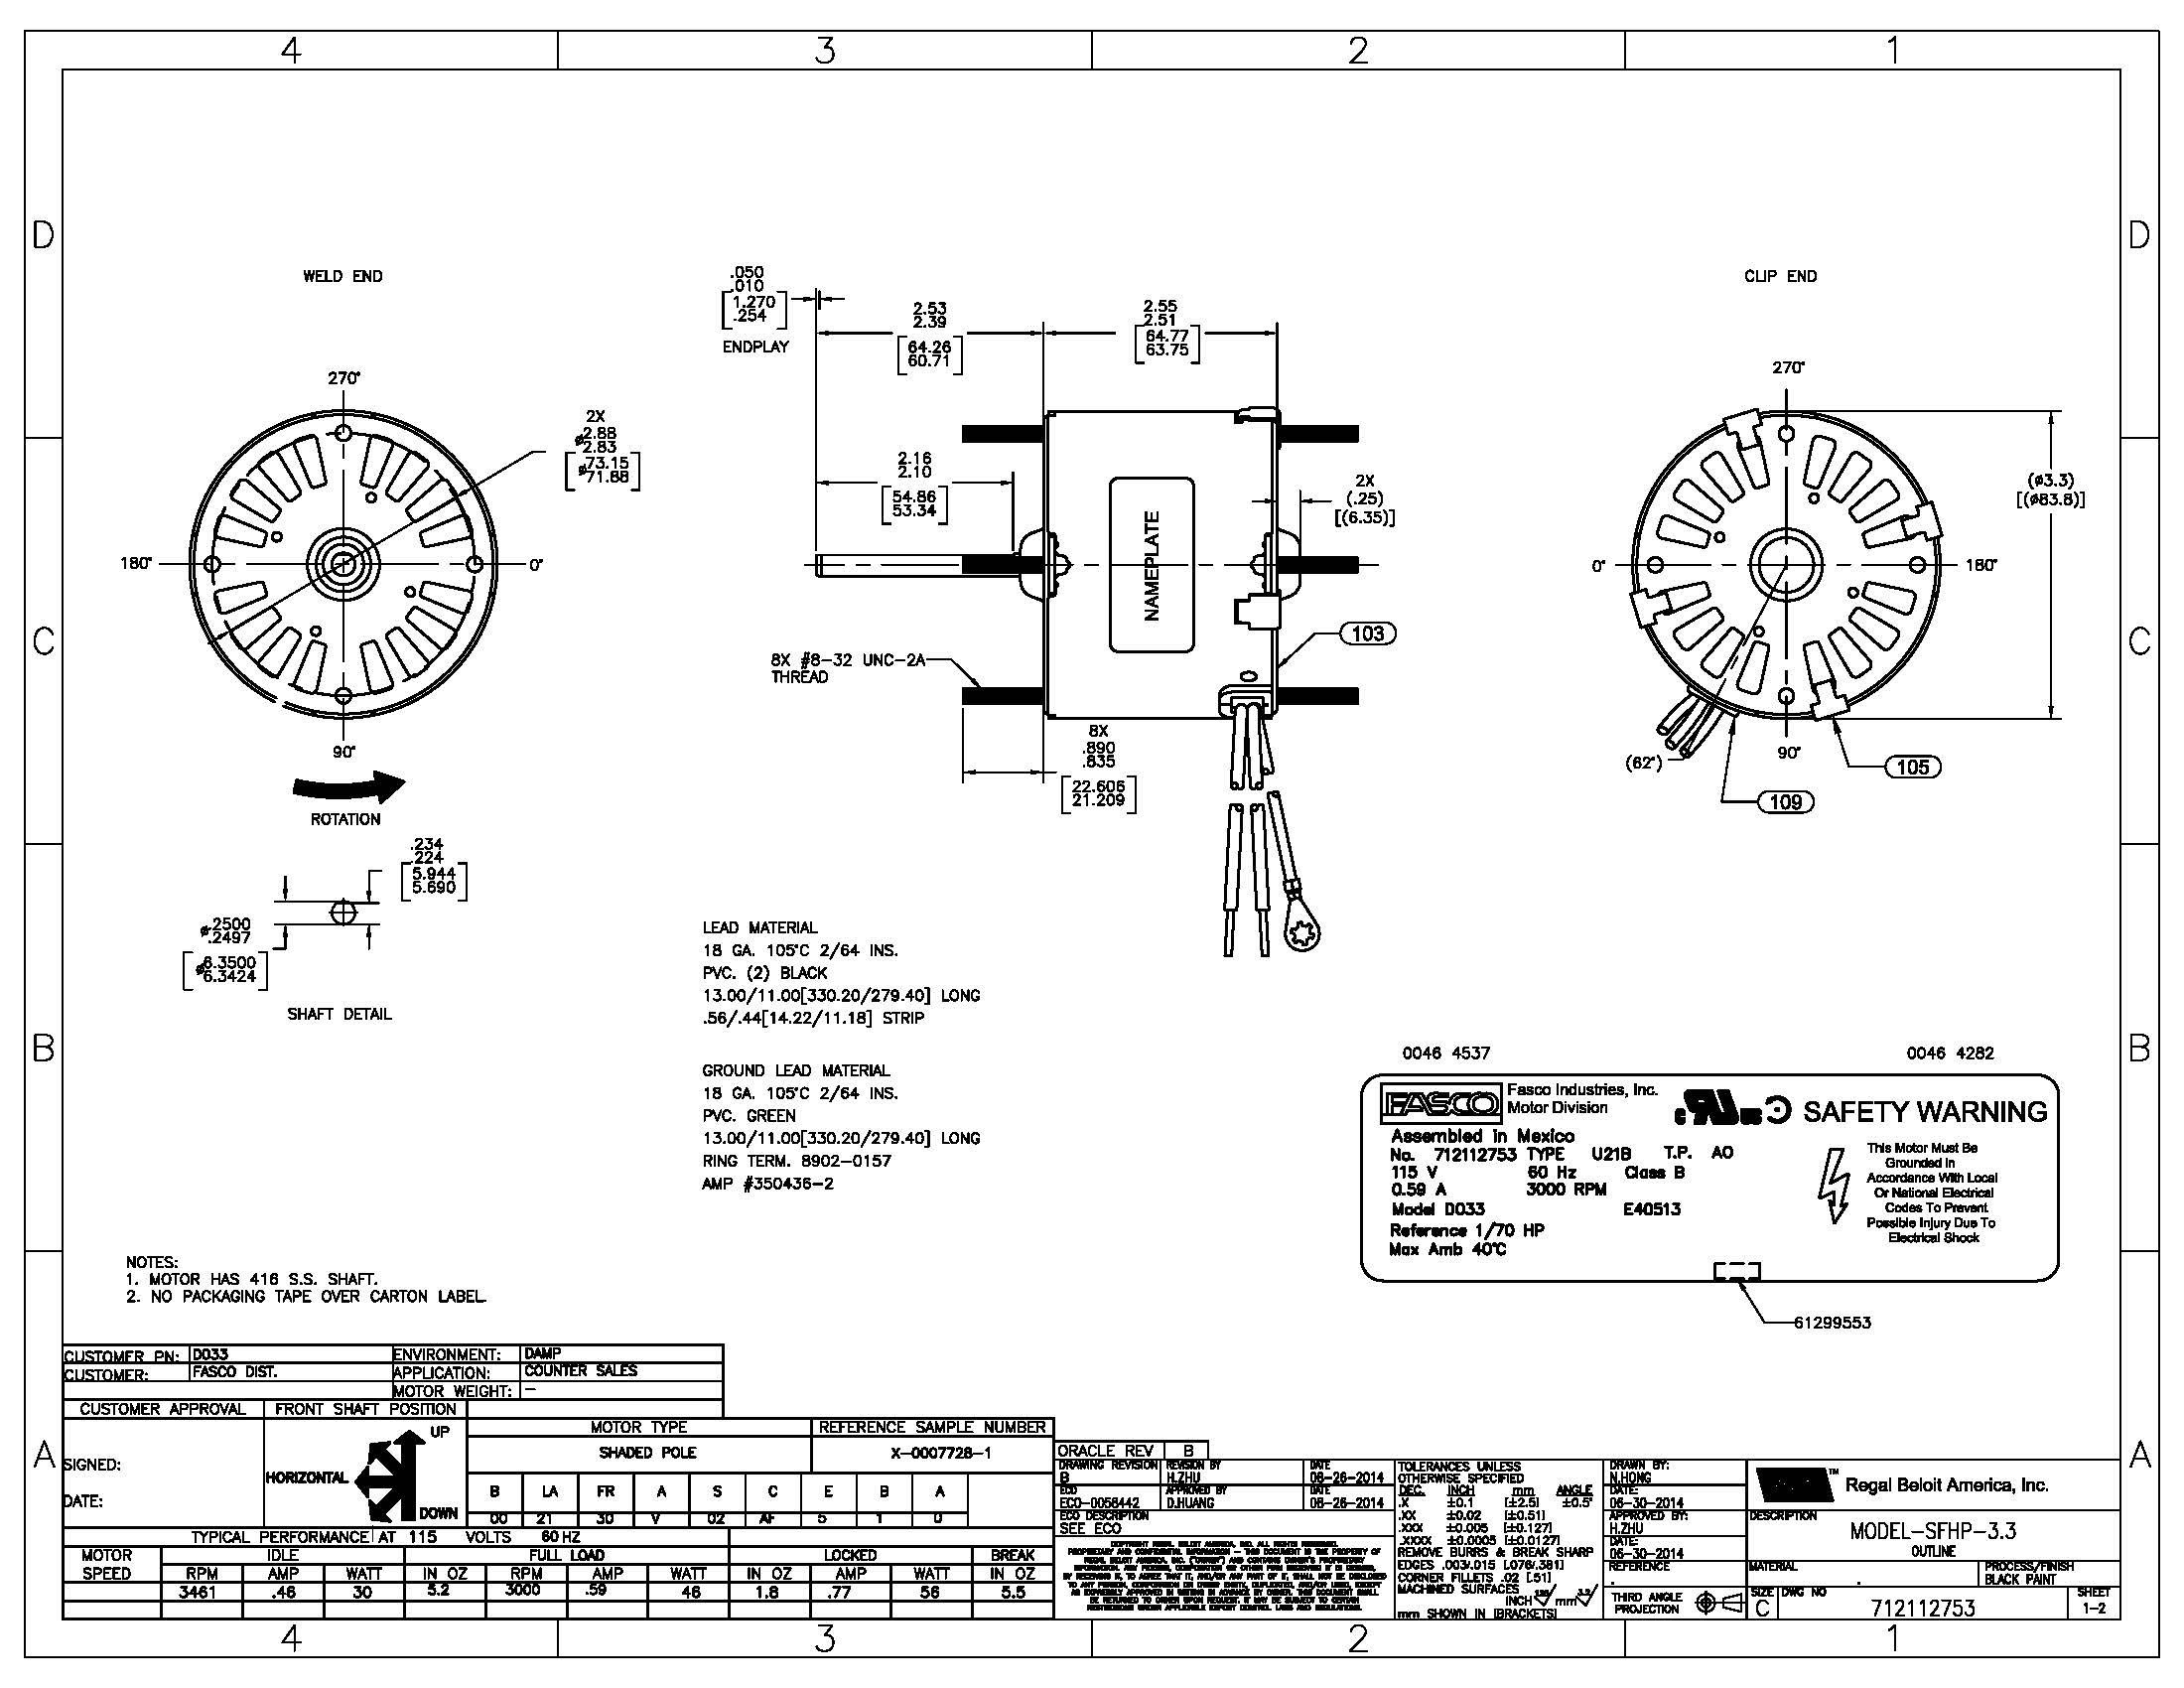 fasco fan motor wiring diagram Download-Hvac Motor Wiring Diagram New Wiring Diagram for Fasco Blower Motor Fresh Wiring Diagram Shaded 8-c